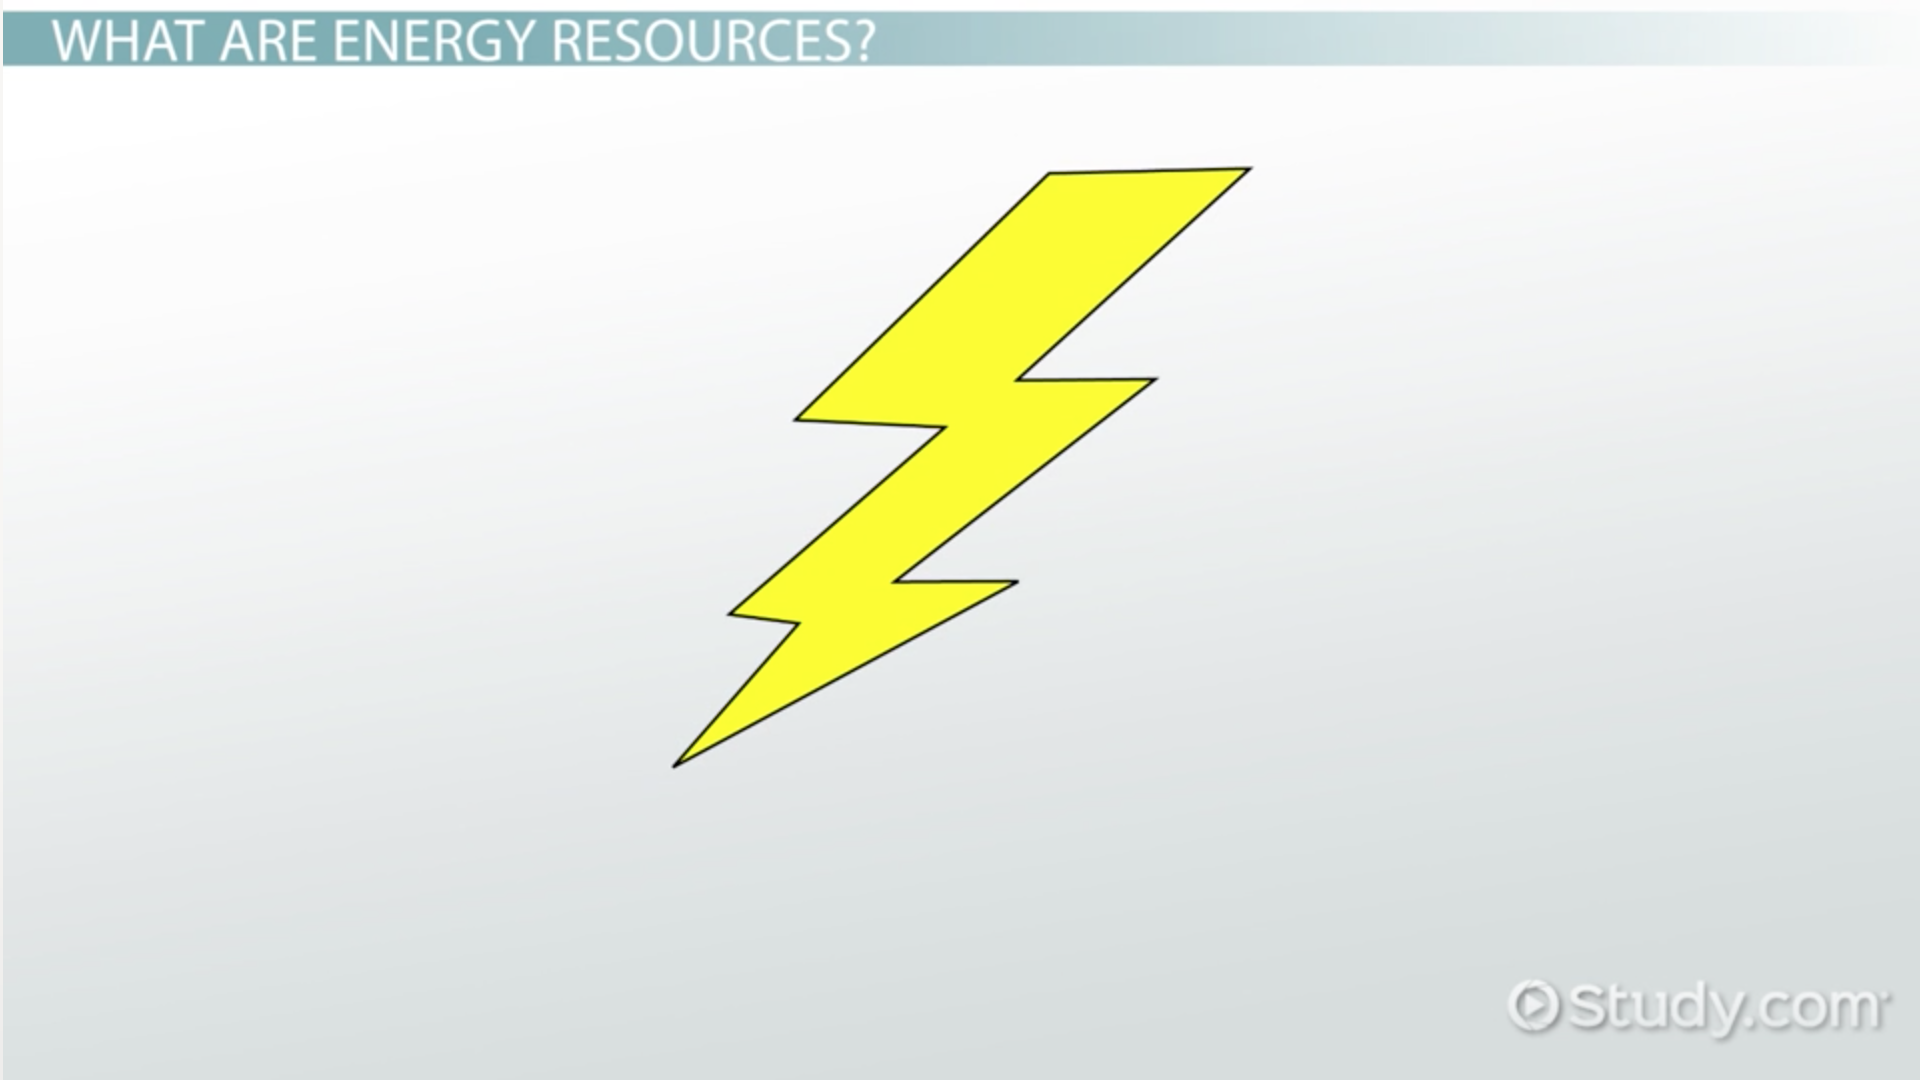 renewable non renewable resources definition differences energy resources definition uses